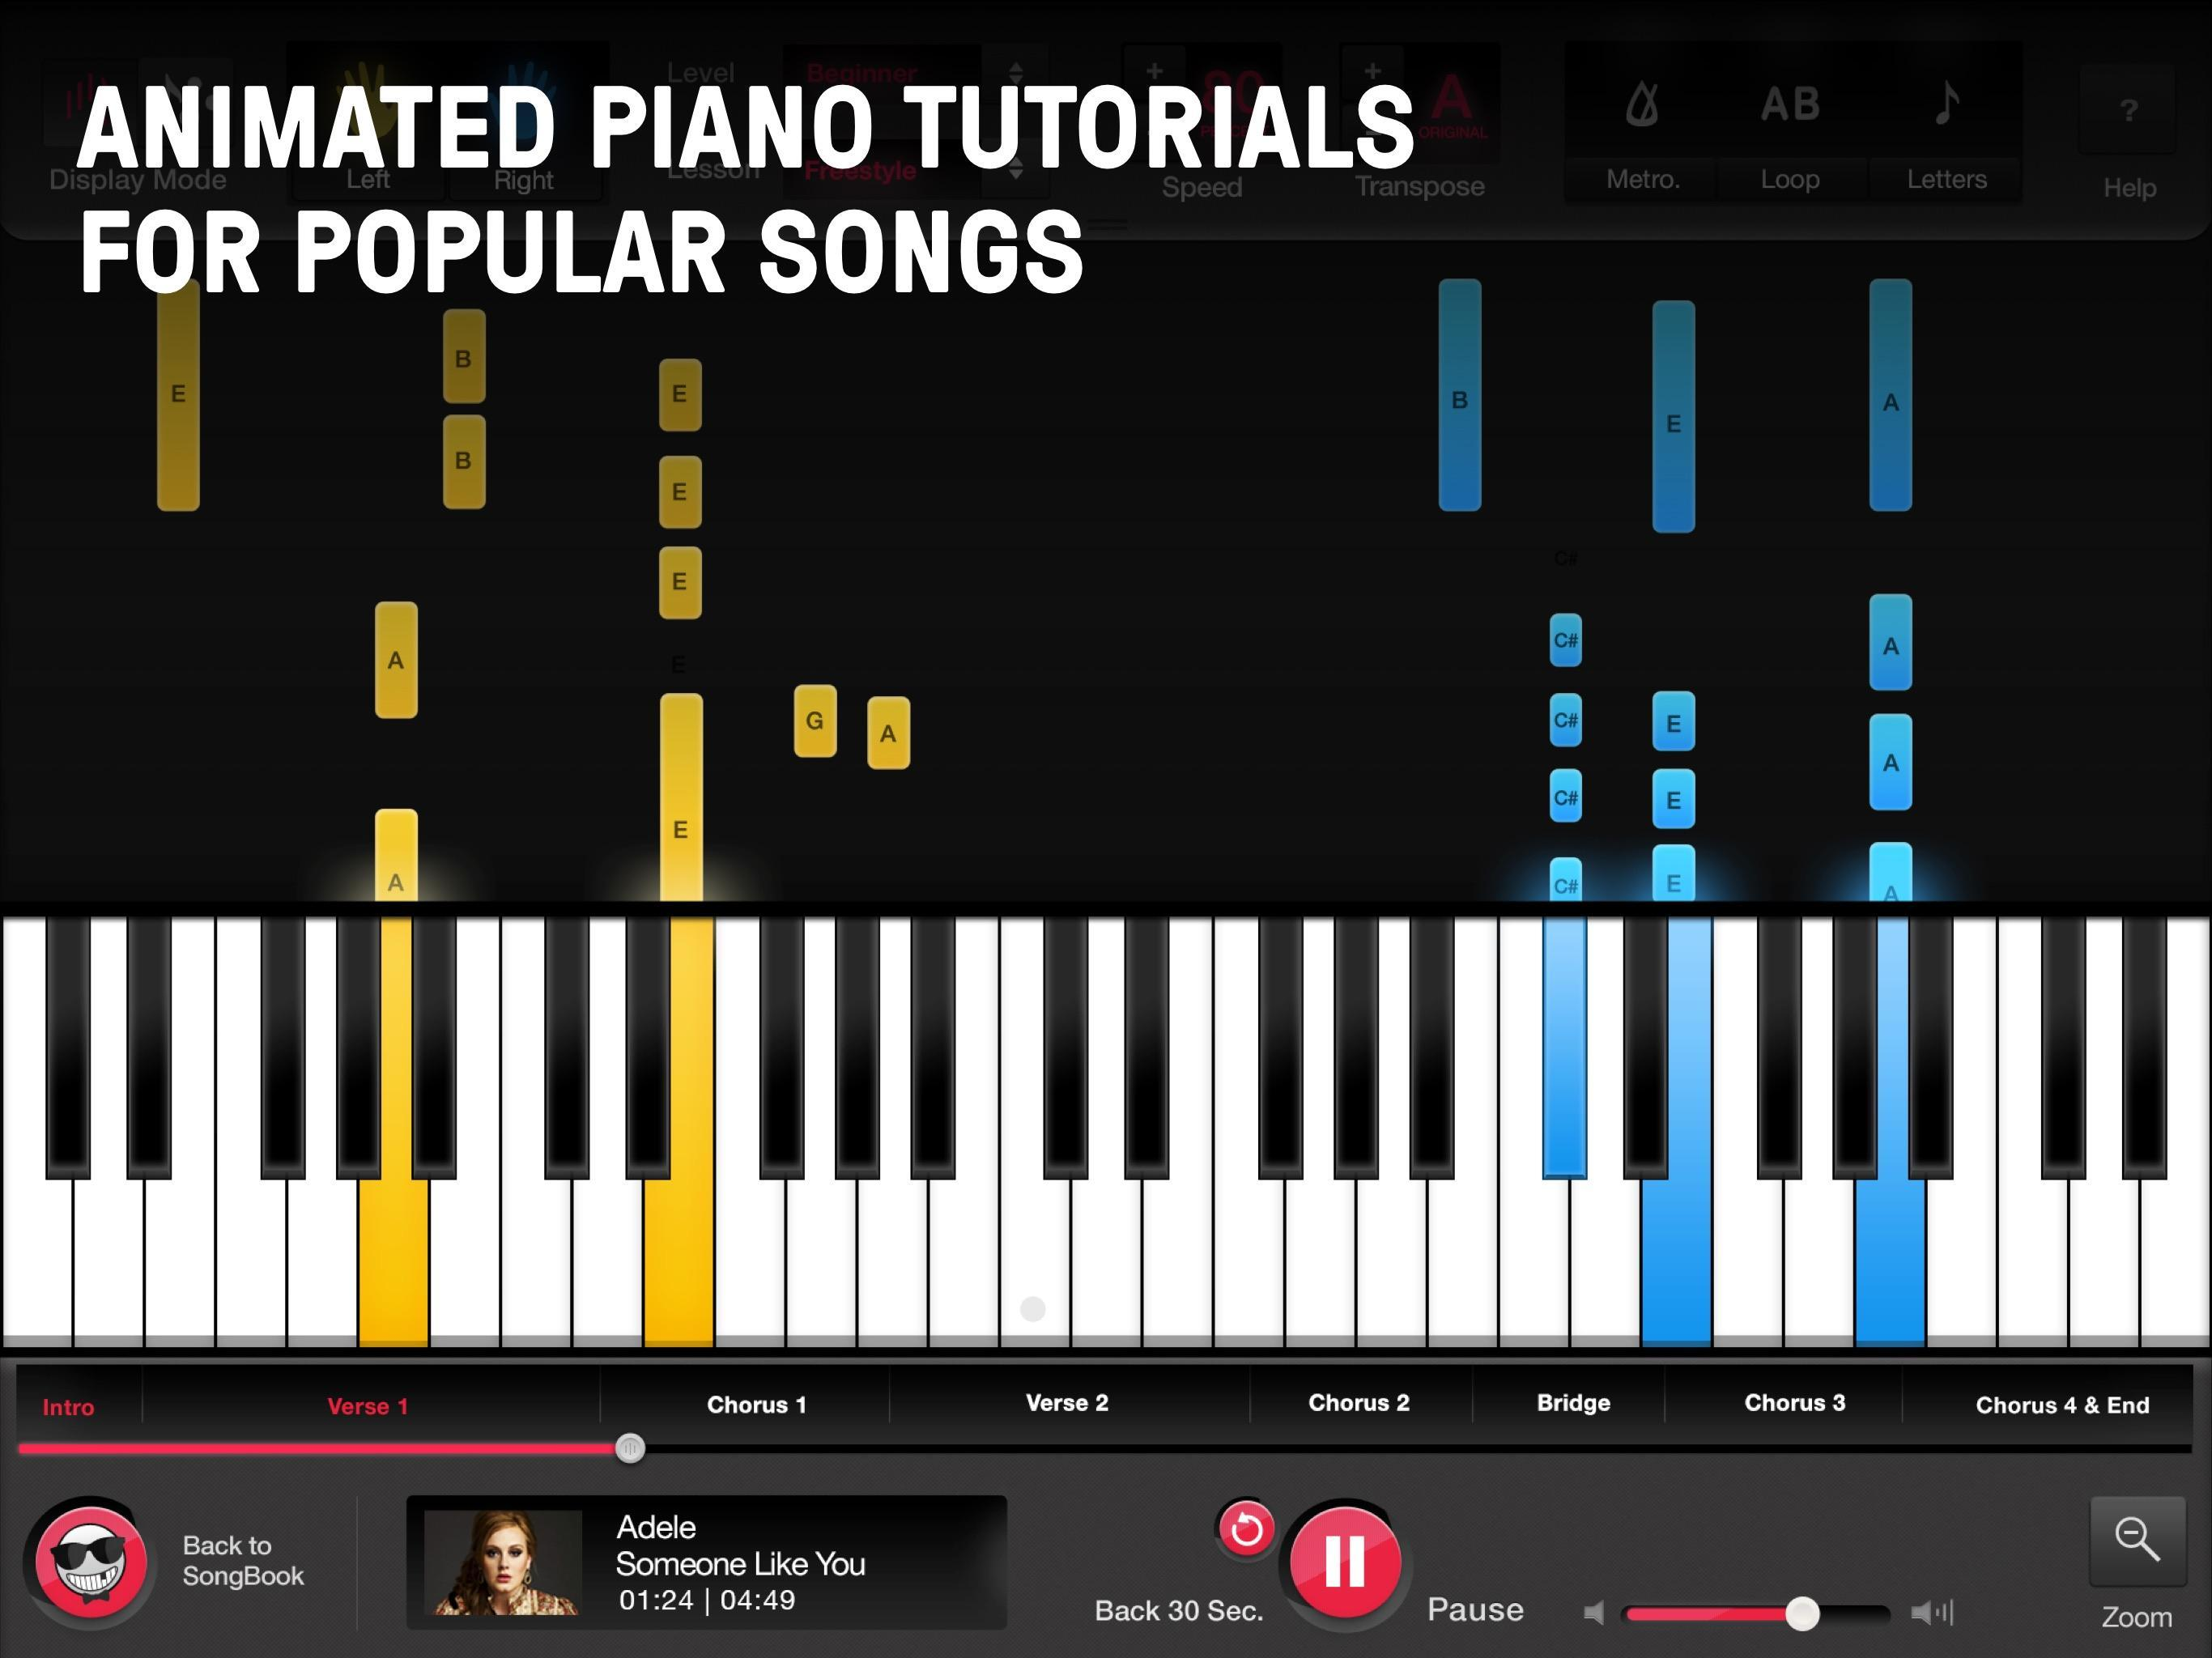 Online Pianist - Piano Tutorial with Songs for Android - APK